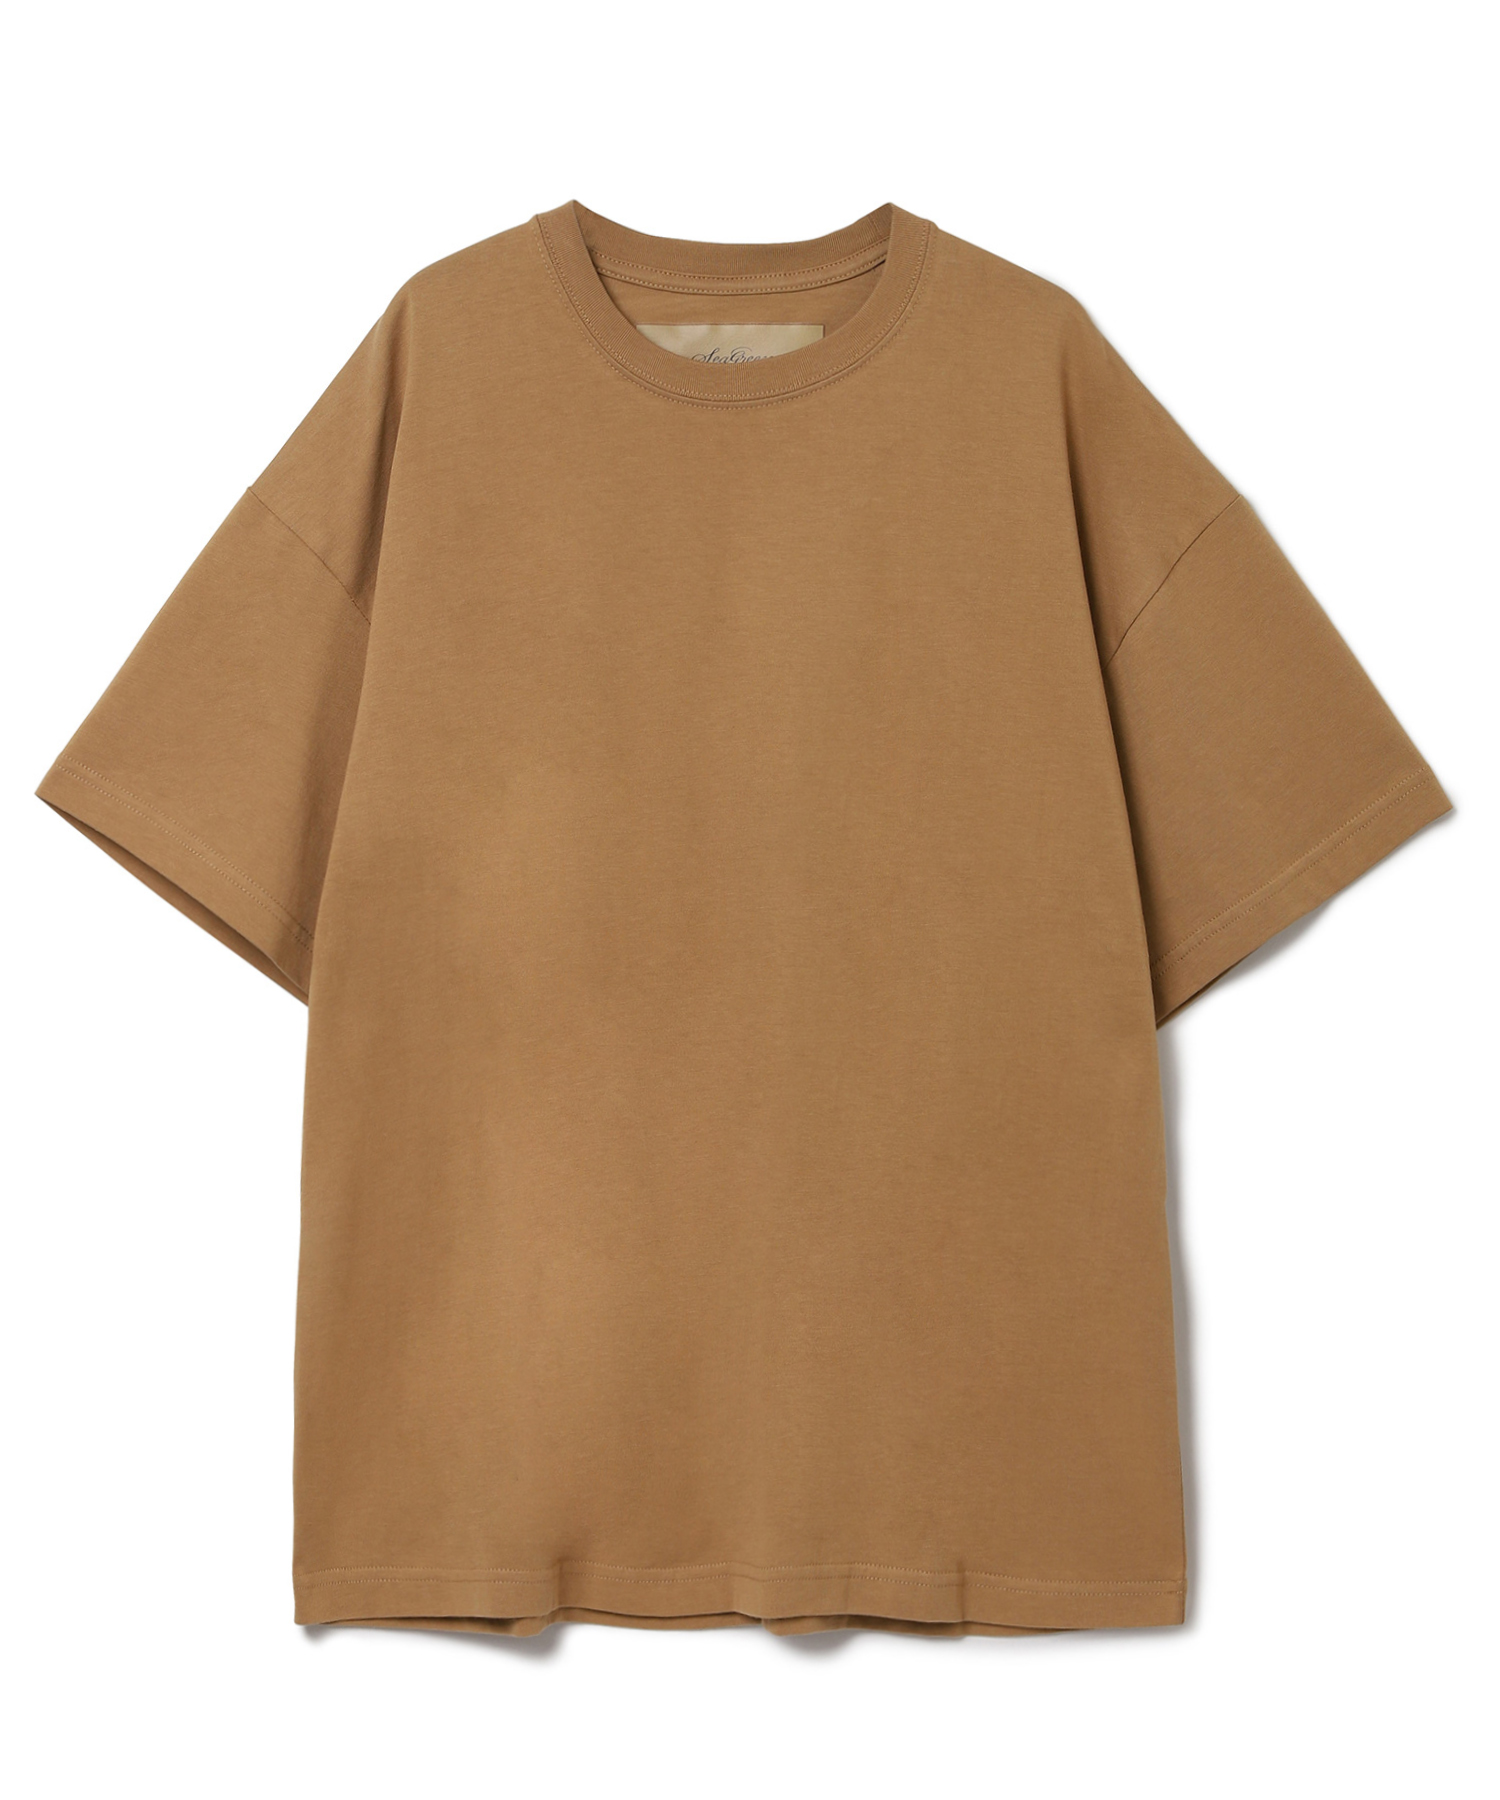 Seagreen Exclusive CUT and SEW